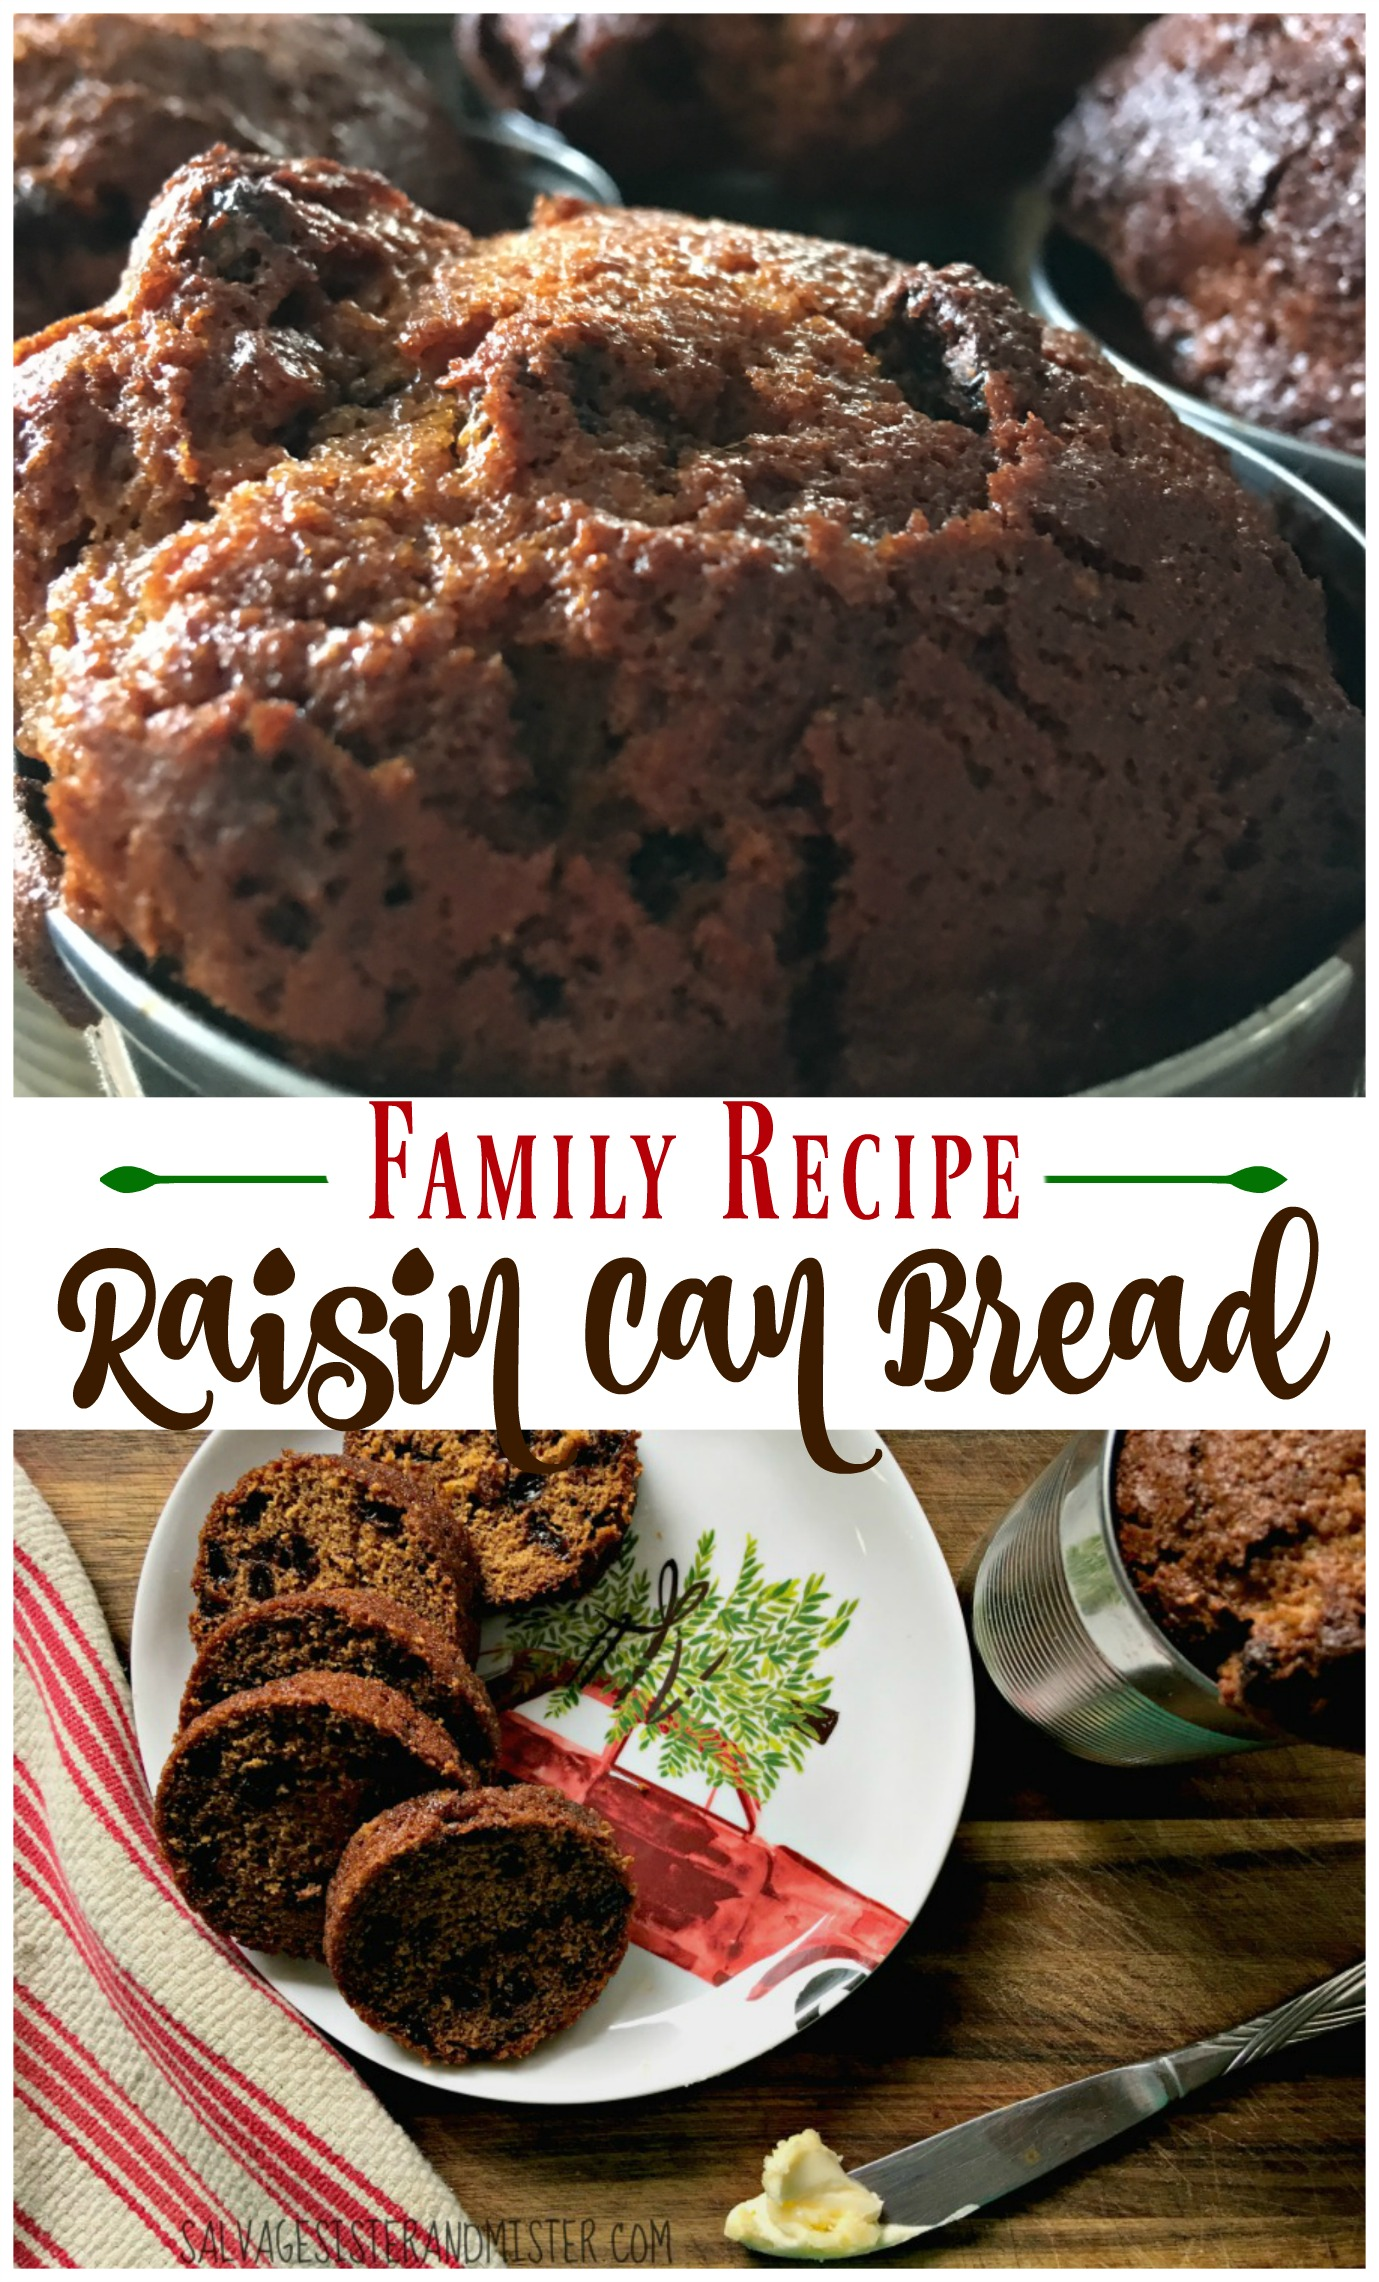 Family recipe 3 generations long. It's a favorite for Christmas morning. This simple raisin can bread can be made ahead of time and froze until needed. Its a great way to reuse cans (see you don't need fancy equipement to bake). And kids love the shape. Enjoy a family favorite.